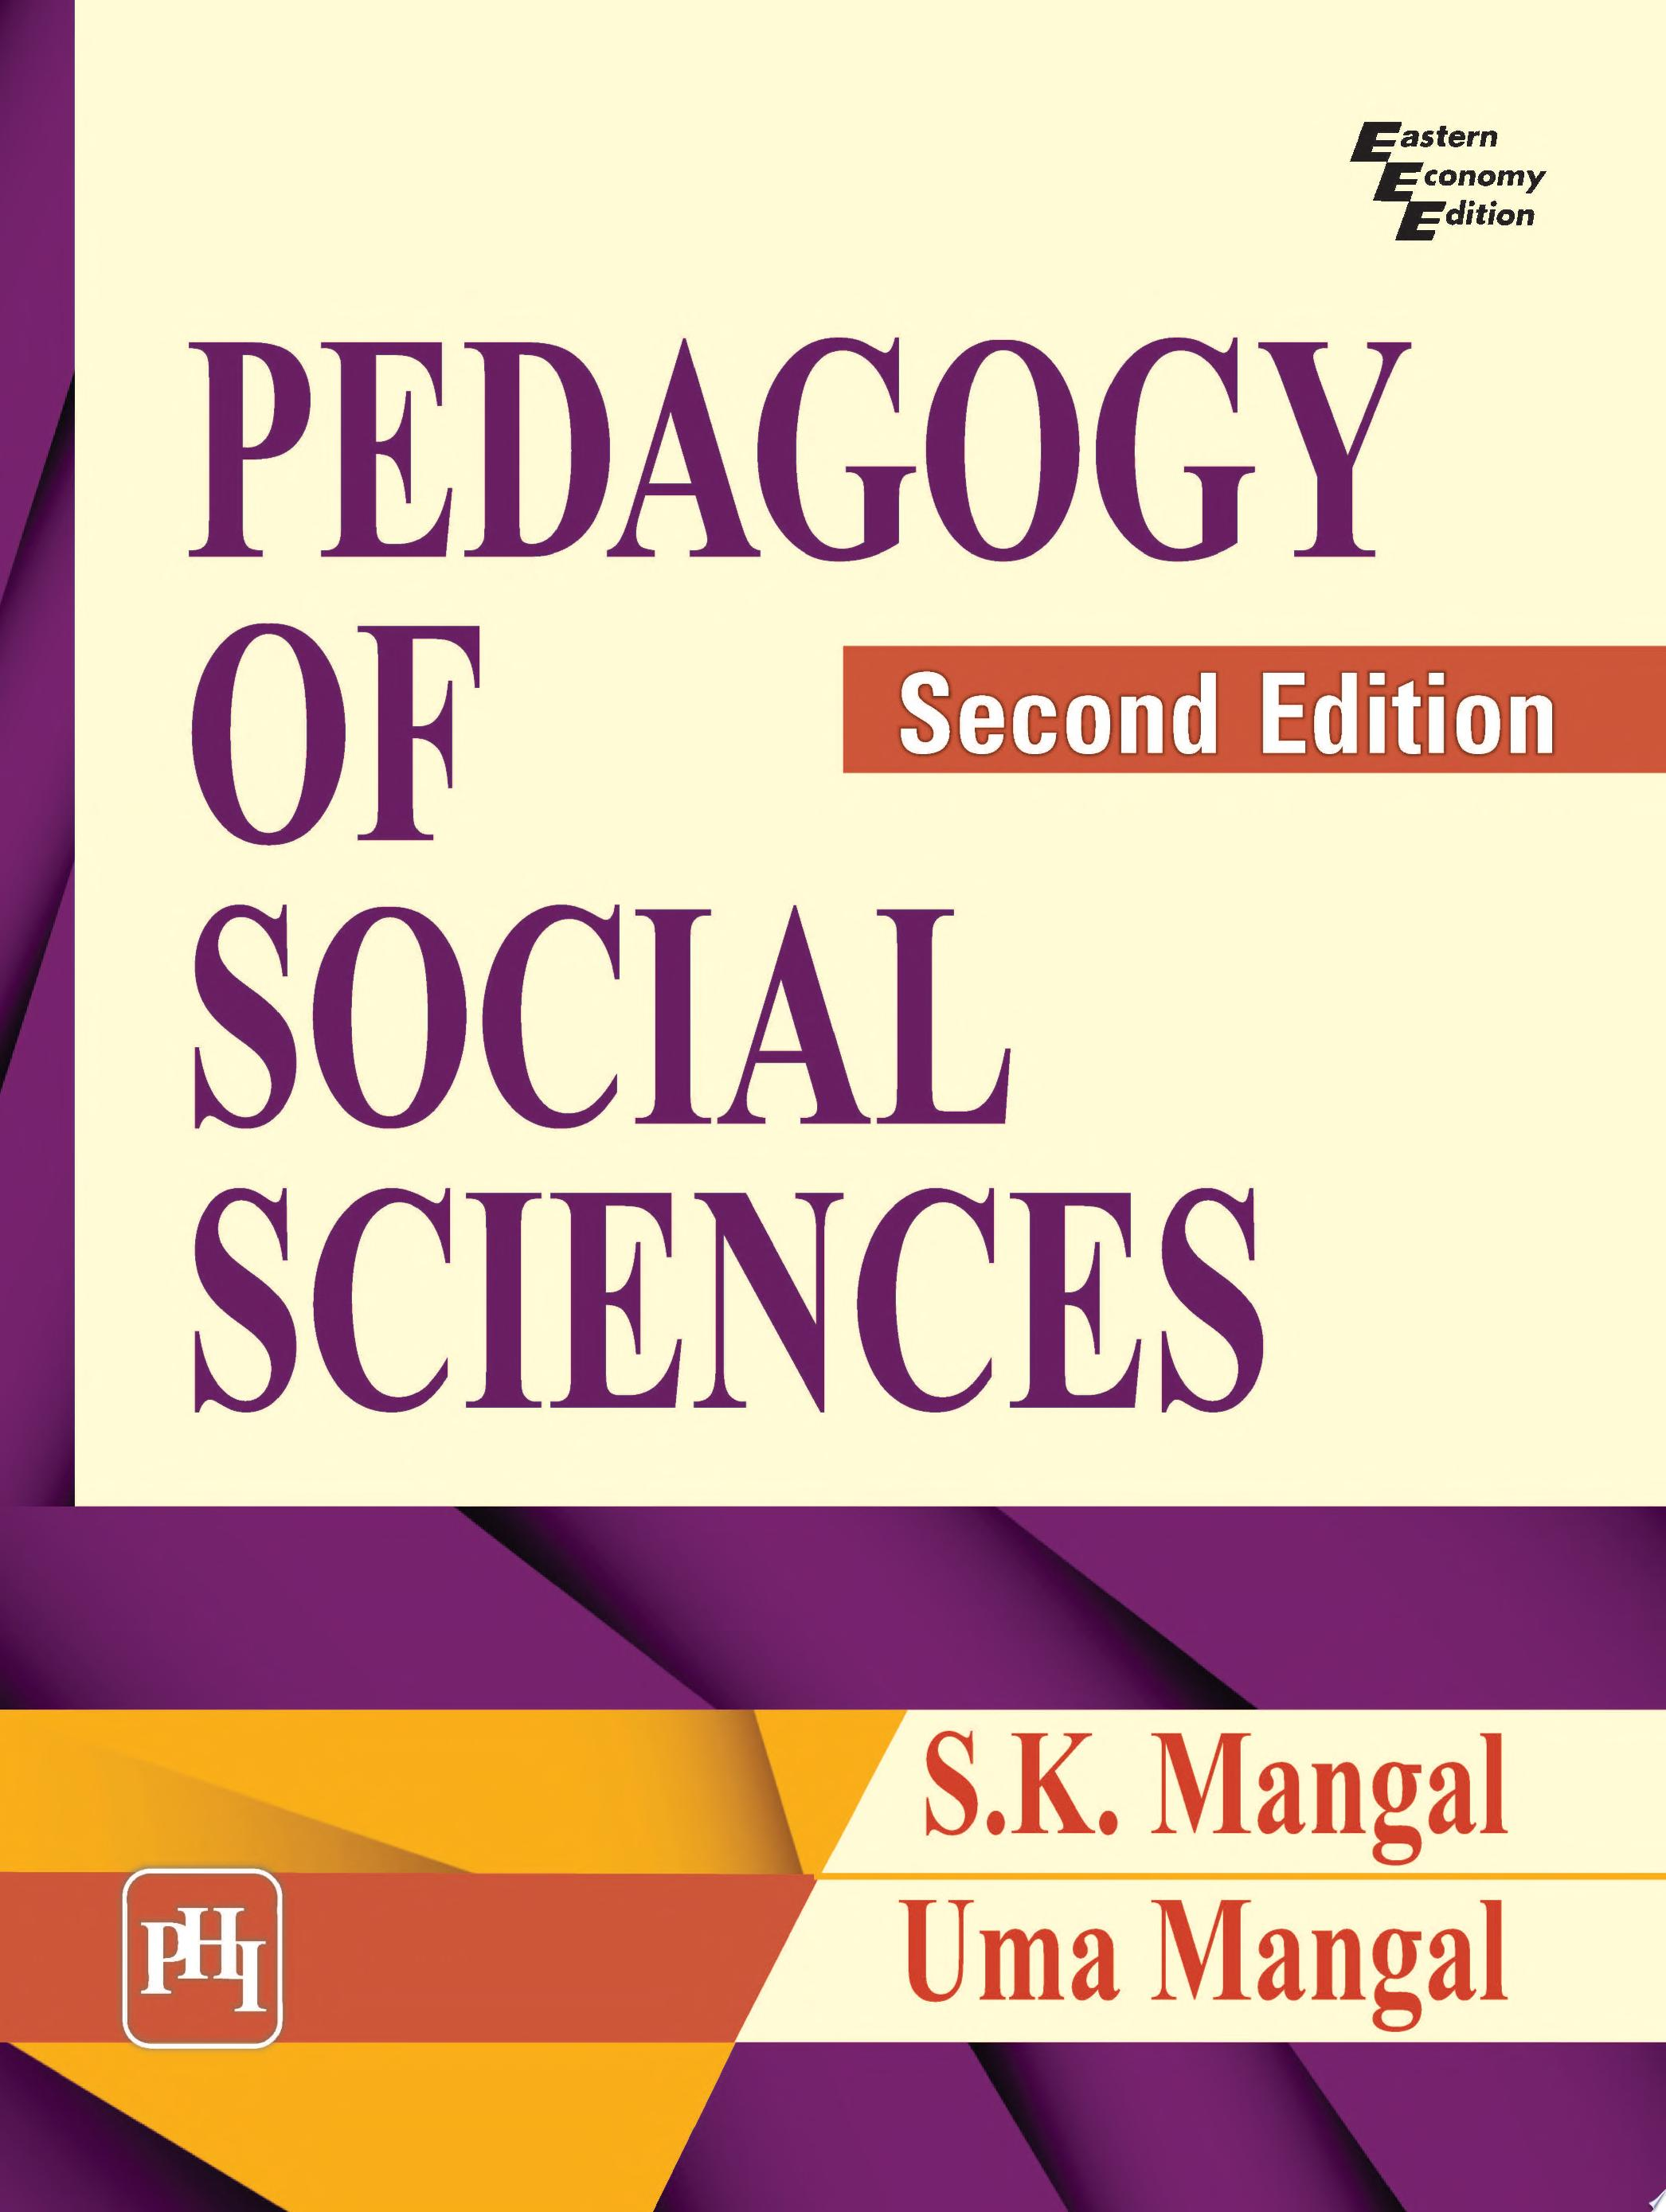 PEDAGOGY OF SOCIAL SCIENCES